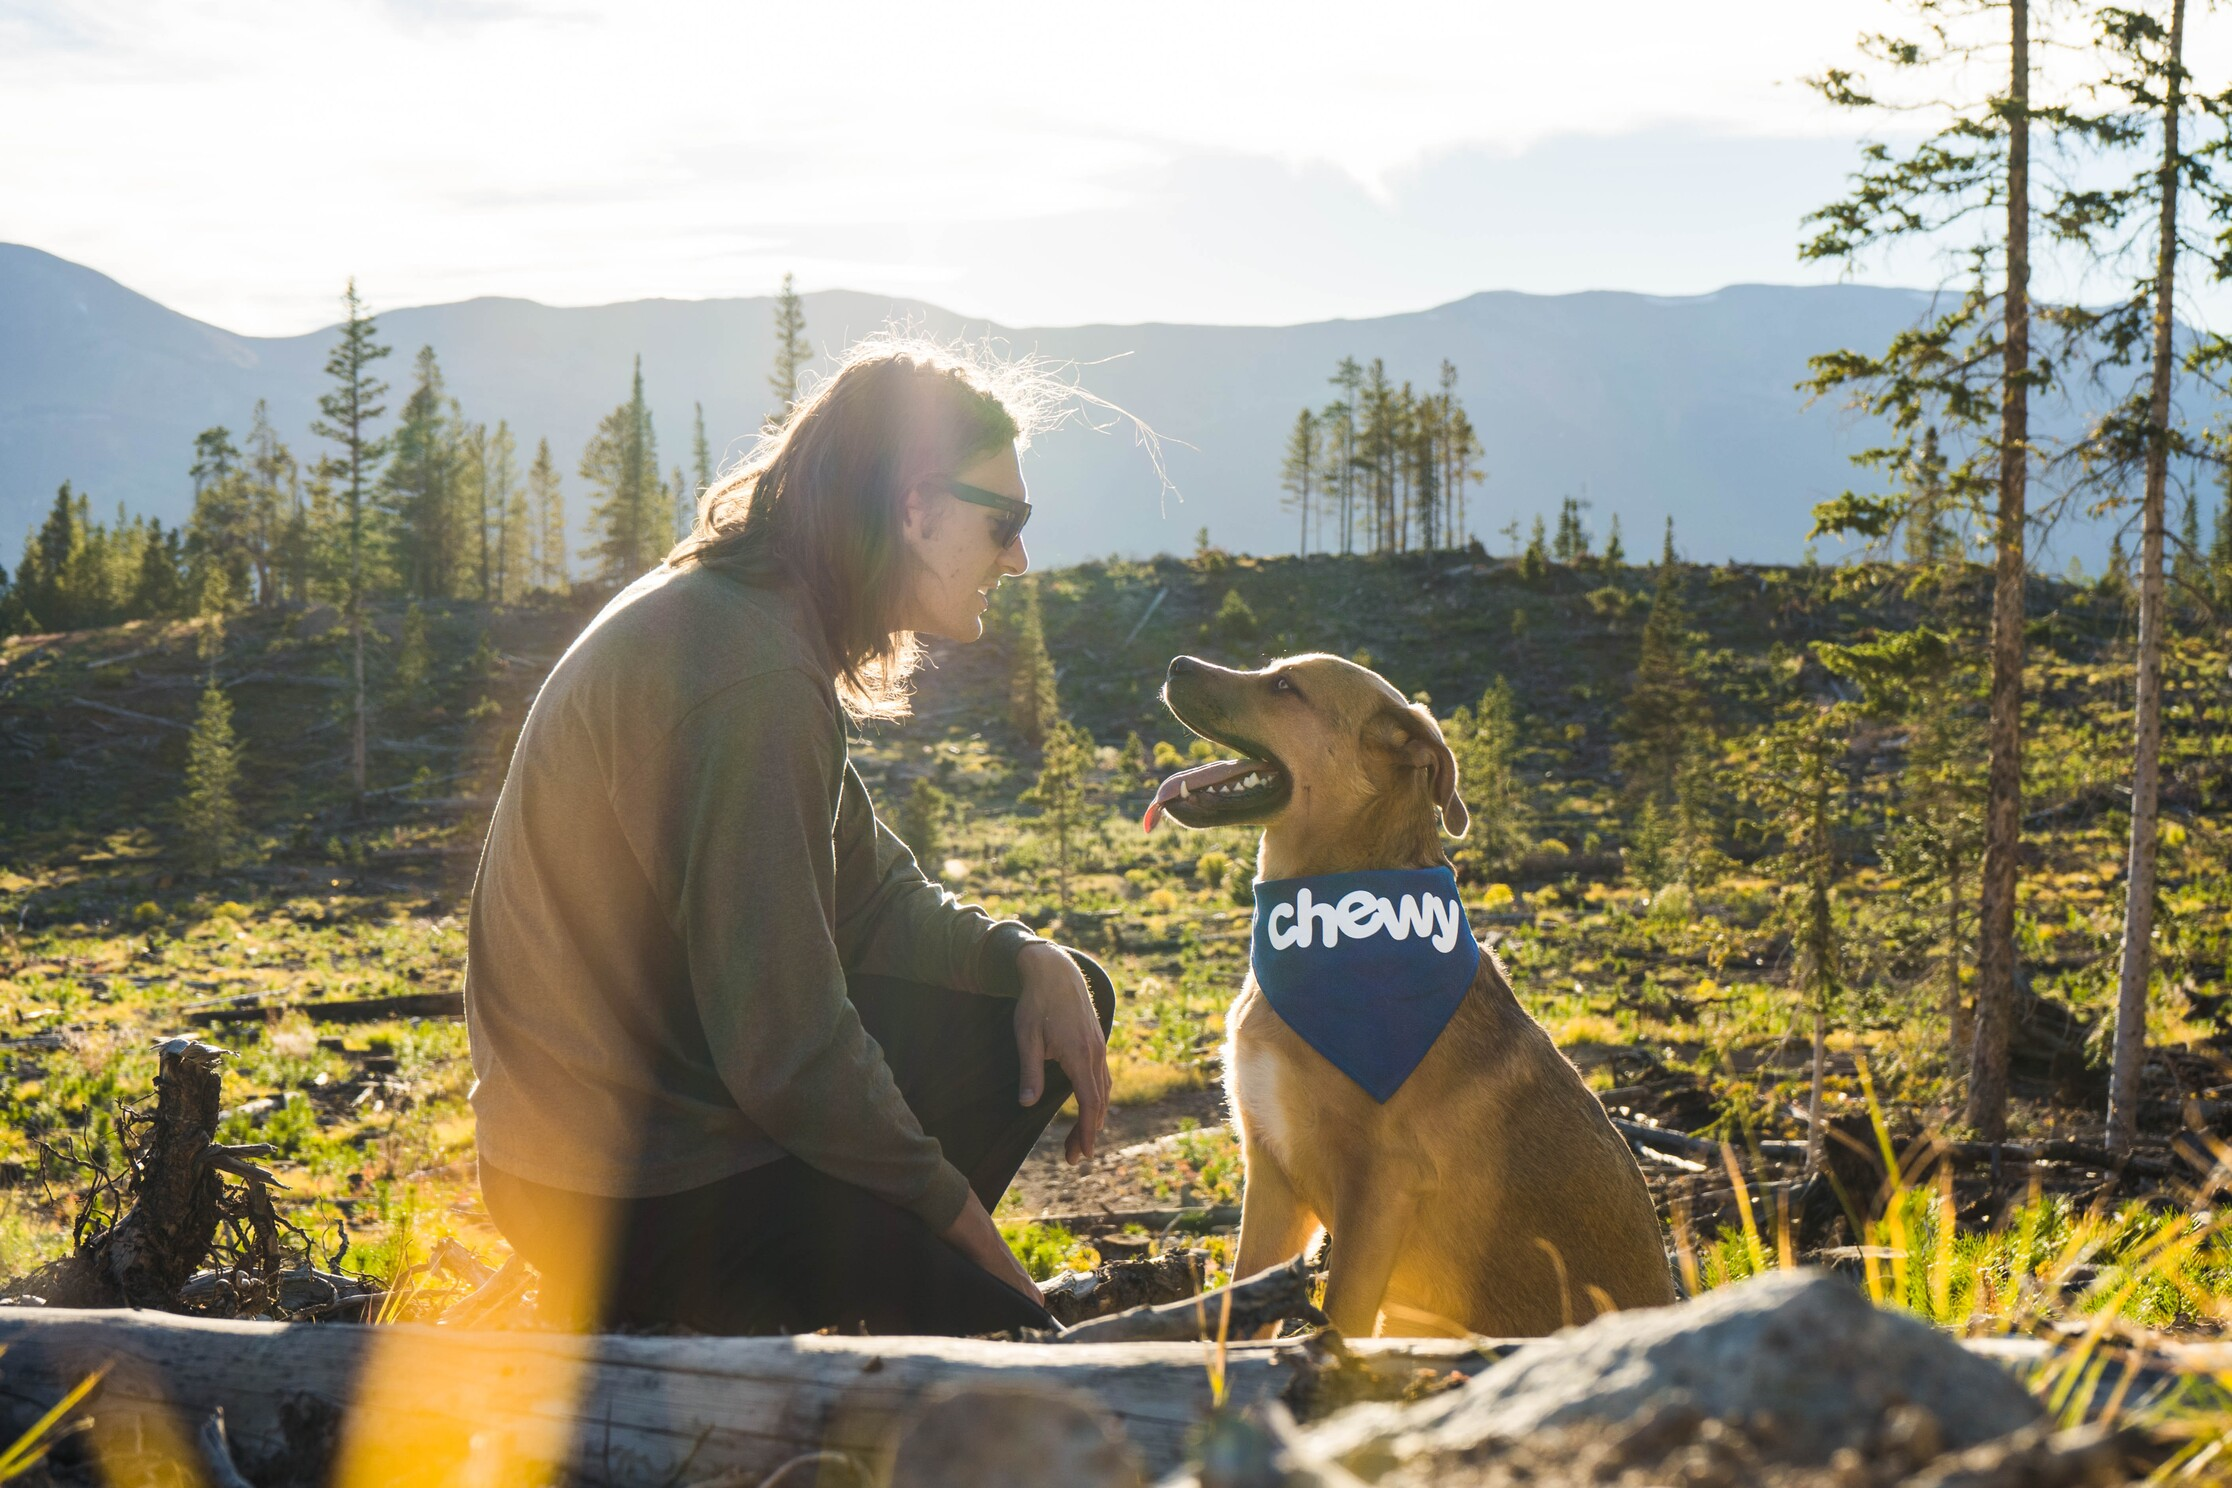 a remote worker connecting with nature with their pet dog to improve remote workplace wellbeing